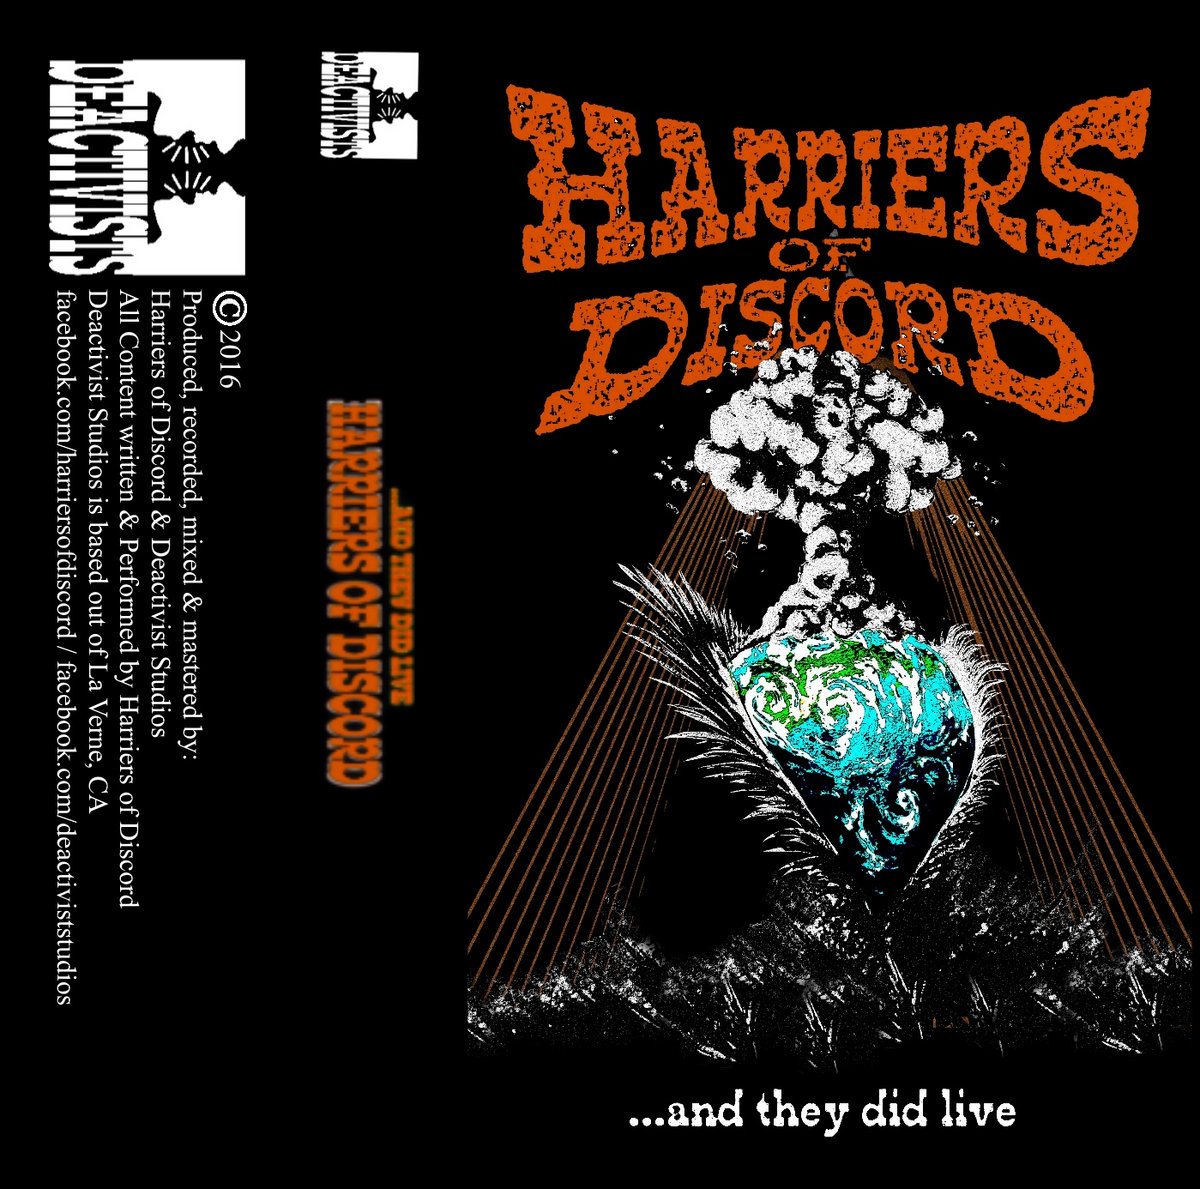 and they did live | Harriers Of Discord